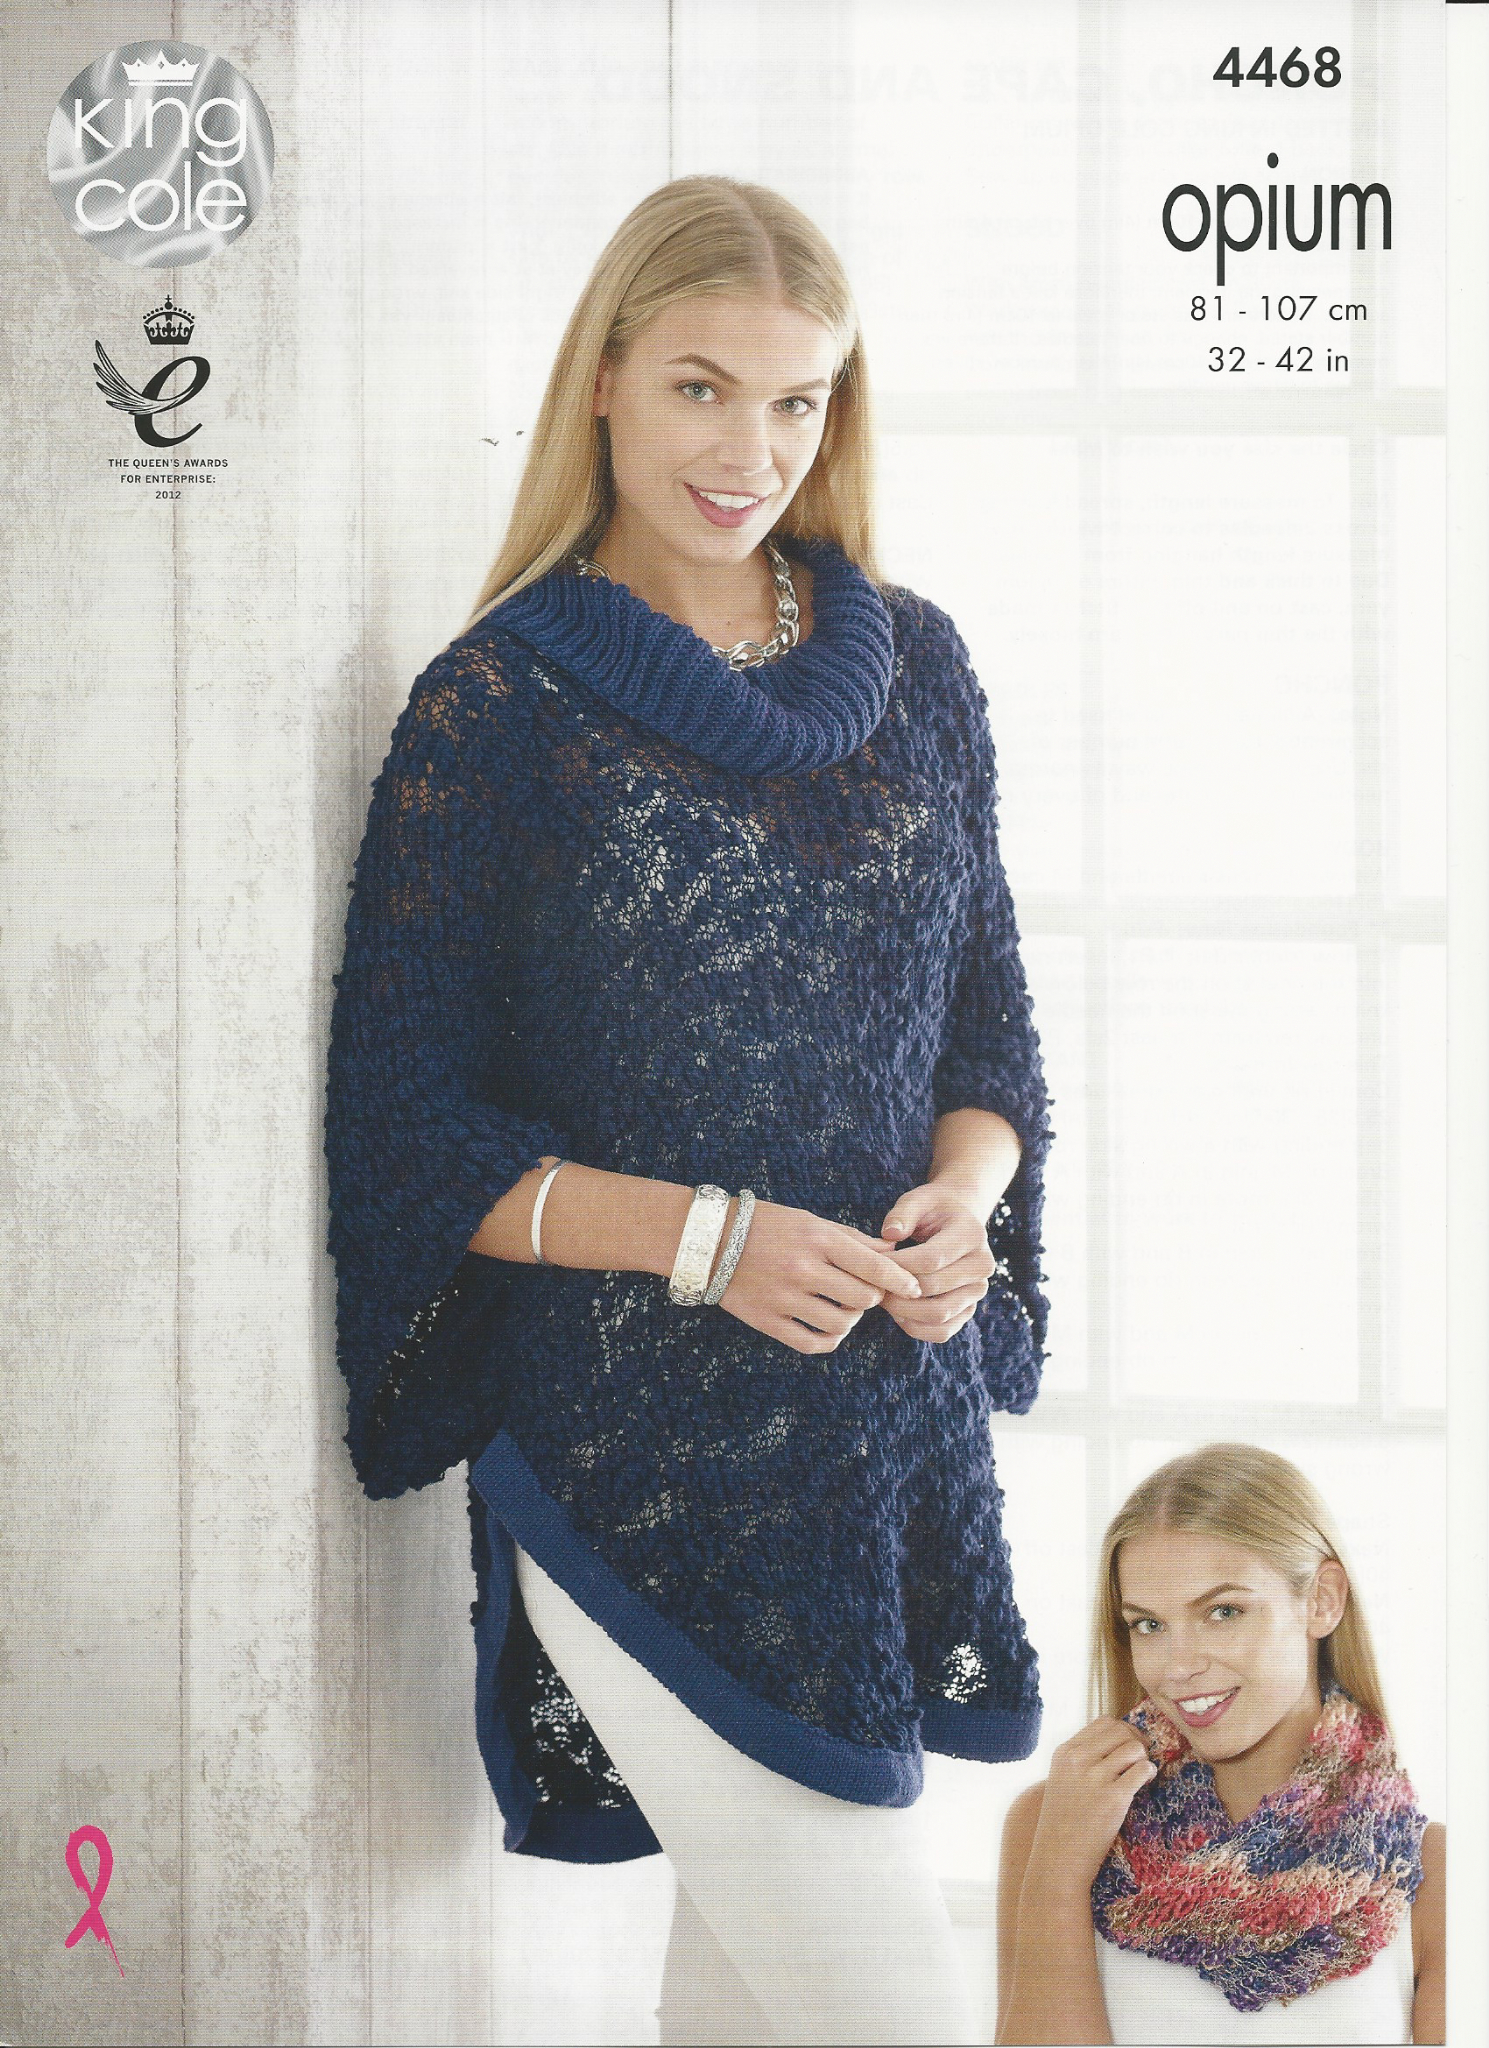 Poncho Knitting Pattern Chunky King Cole Ladies Poncho Cape And Snood Knitting Pattern In Opium Palette Chunky 4468